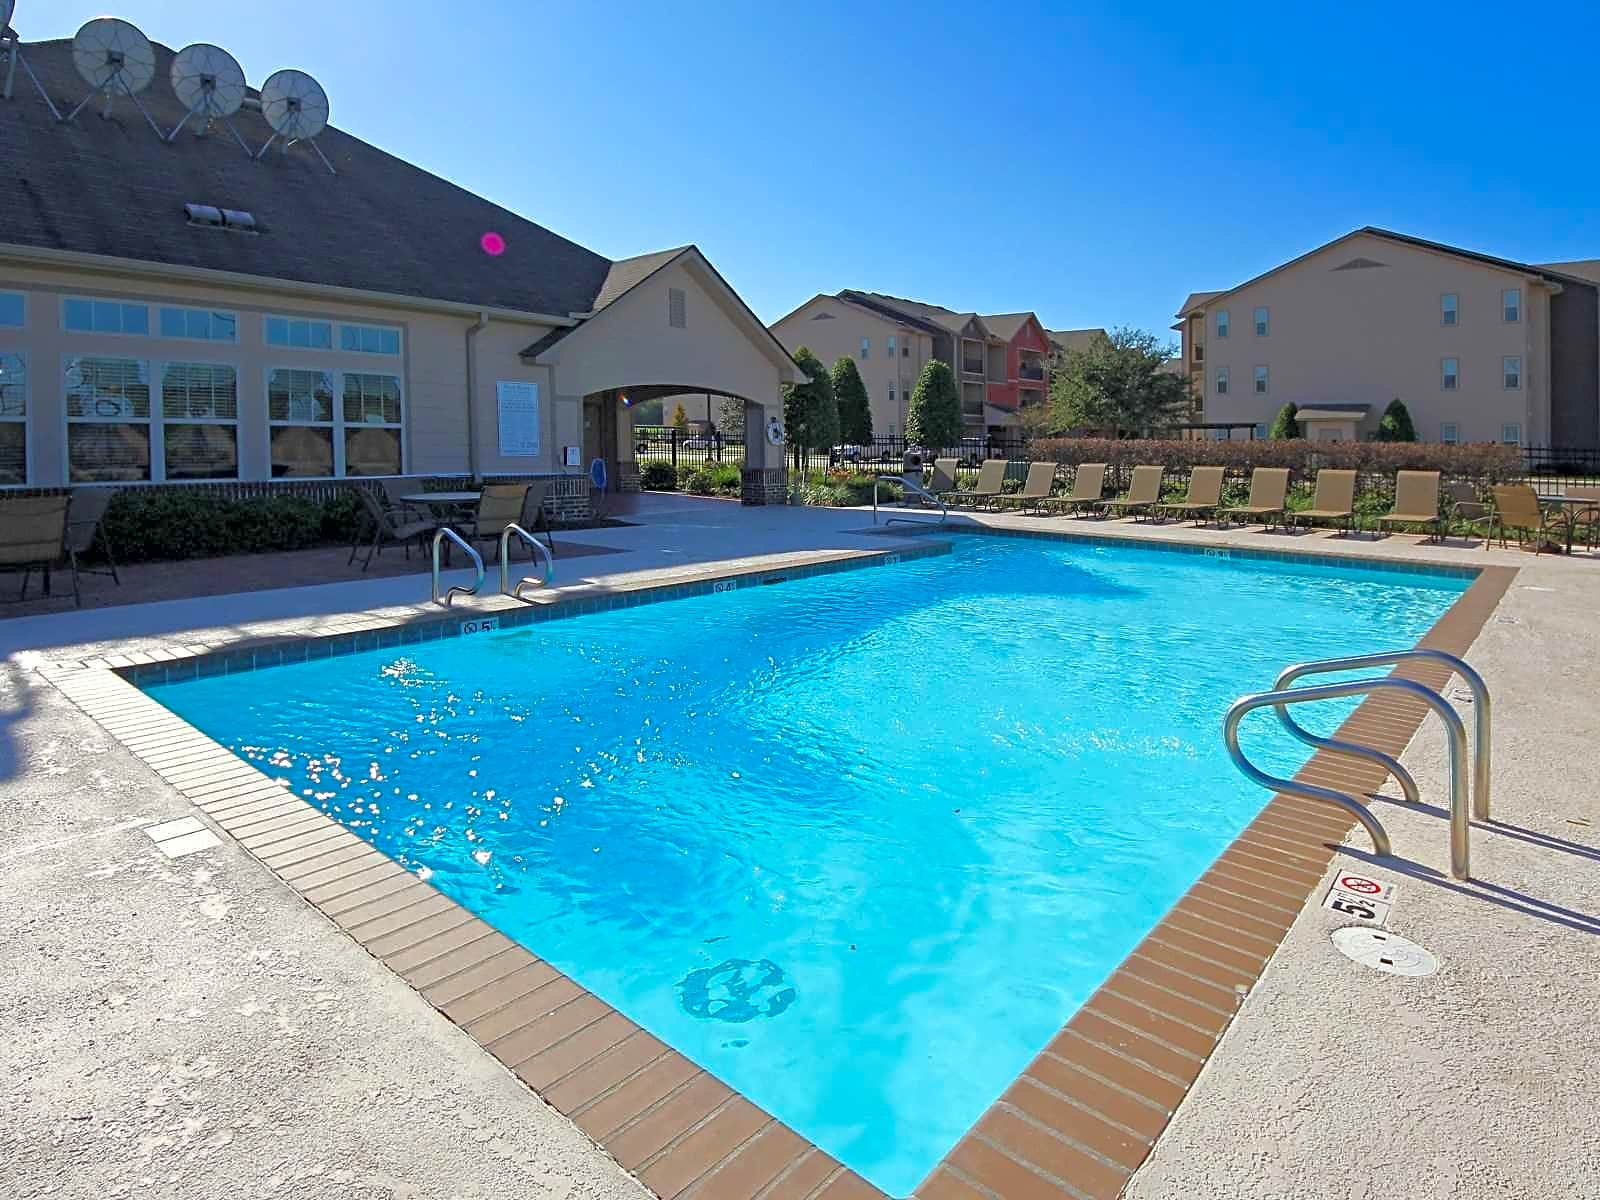 Apartments Near Nicholls Bayou Reserve for Nicholls State University Students in Thibodaux, LA